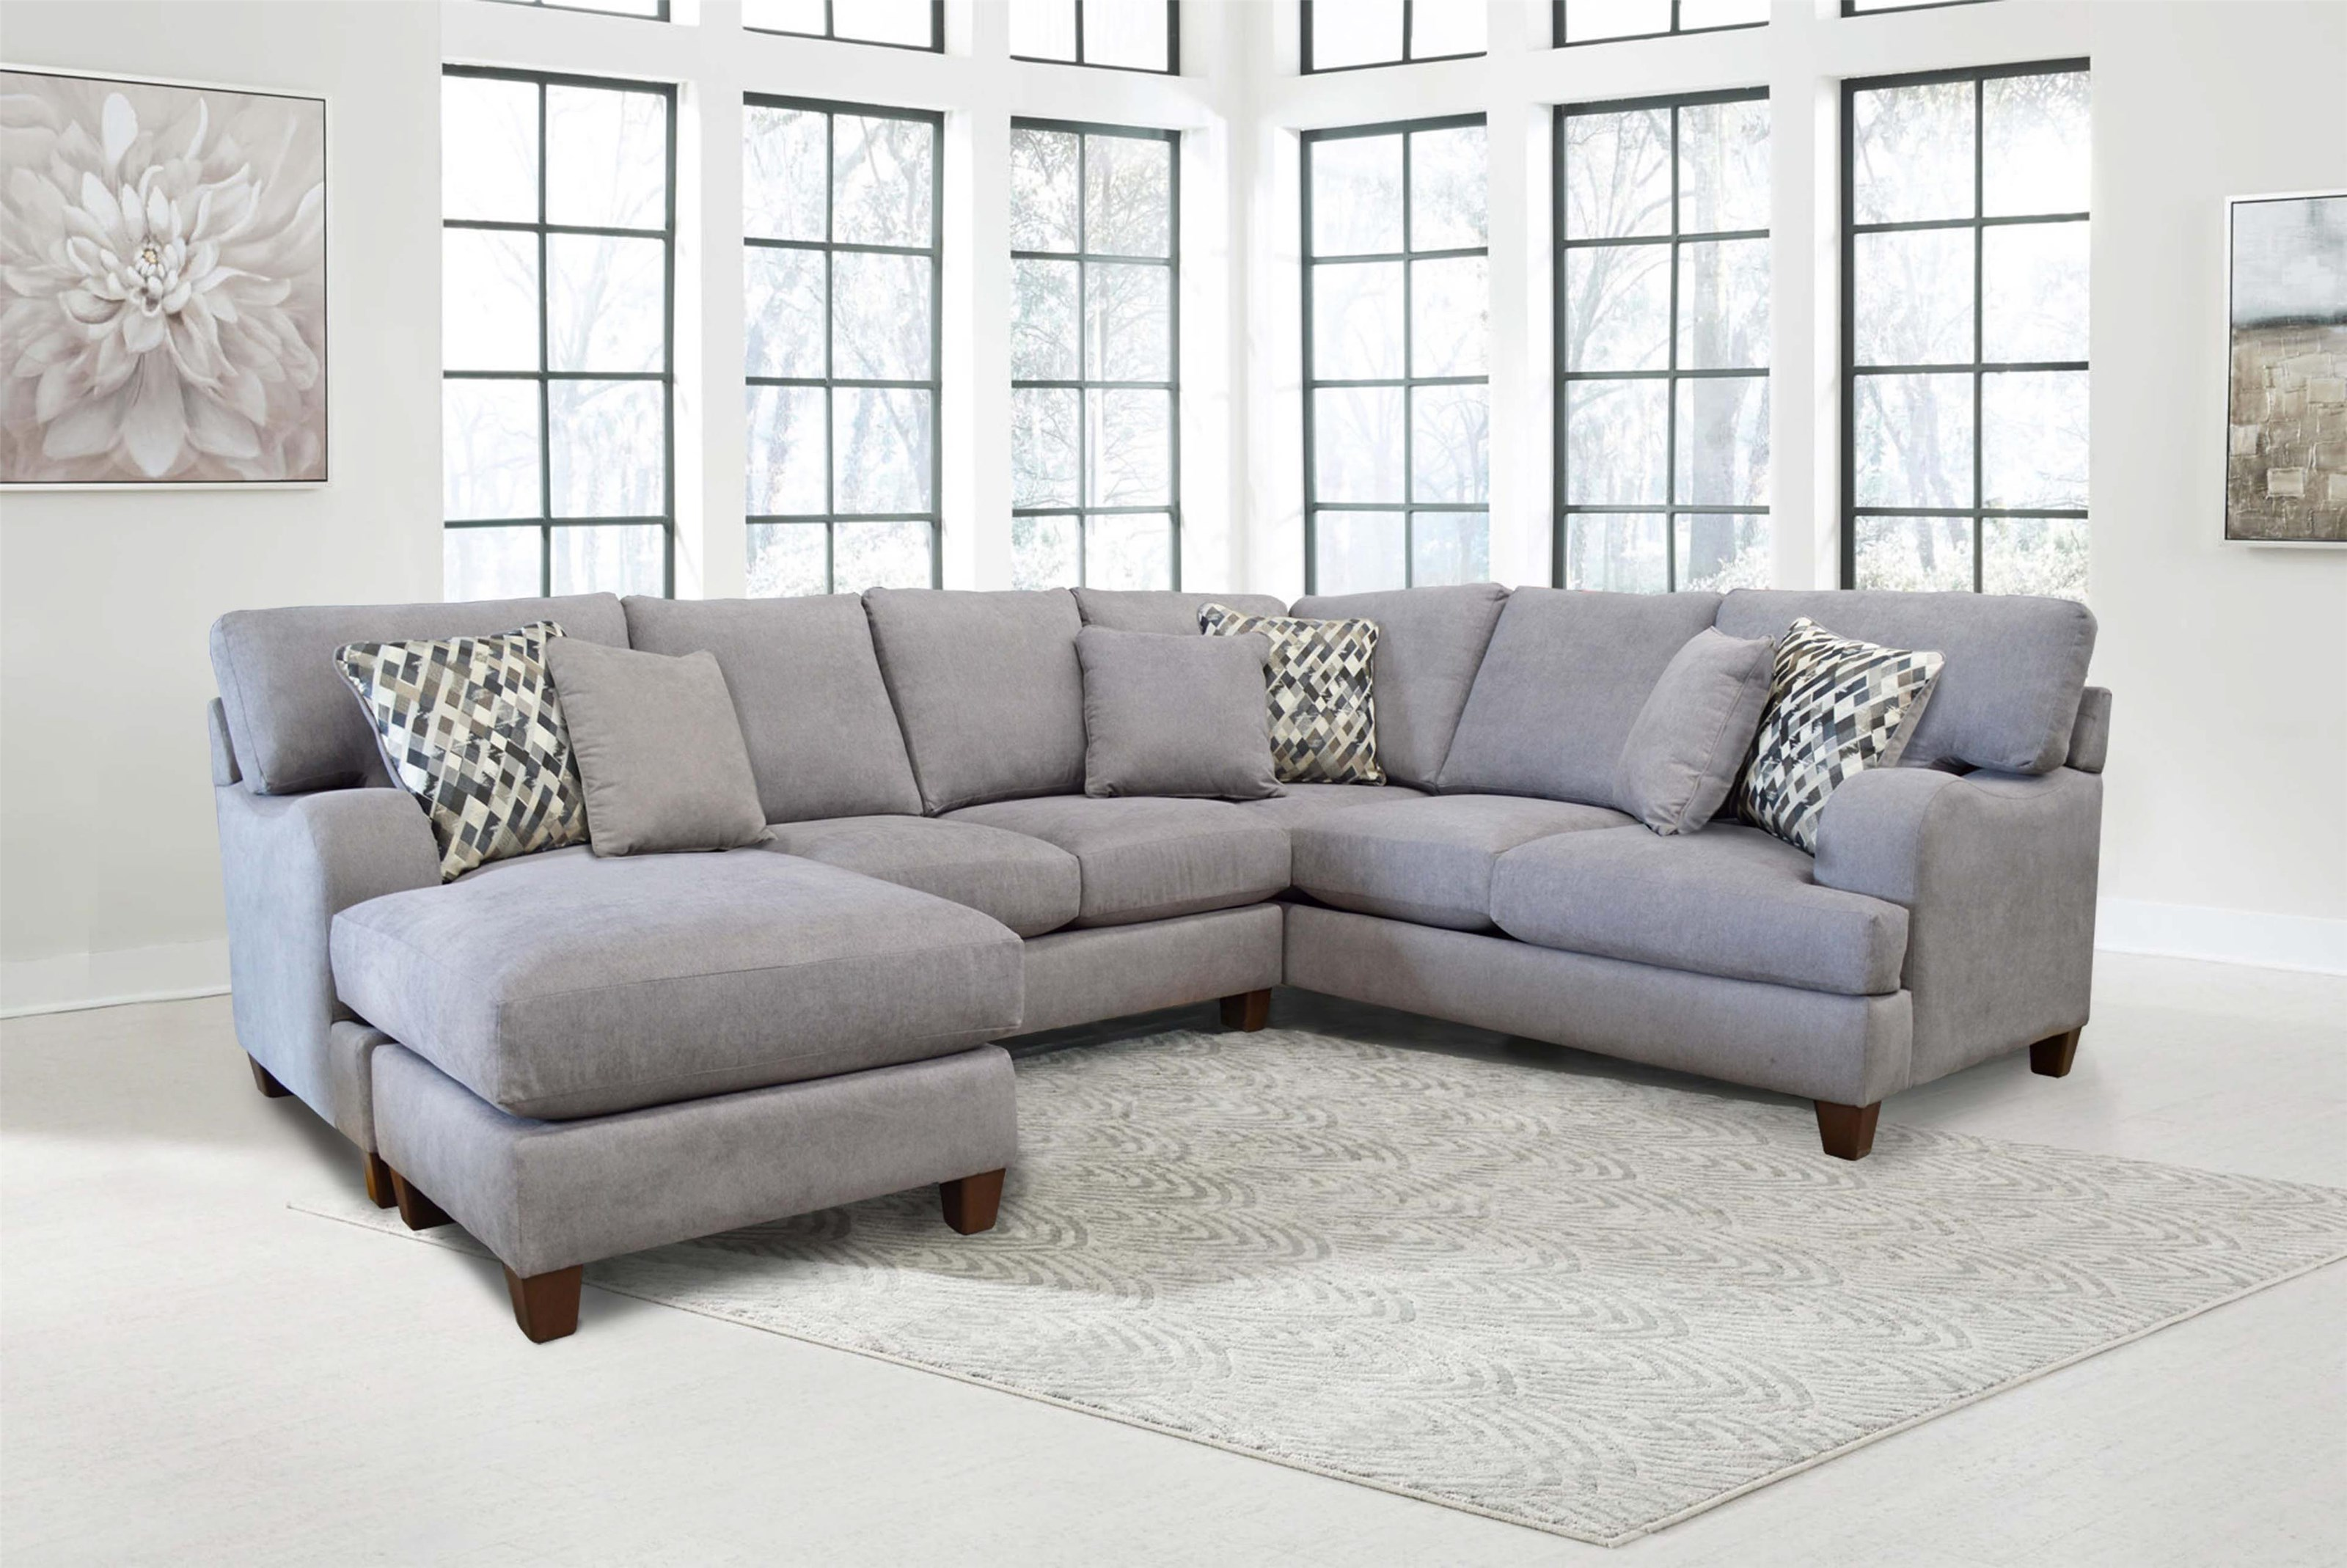 Bonita 2 Piece Sectional by Urban Roads at Darvin Furniture